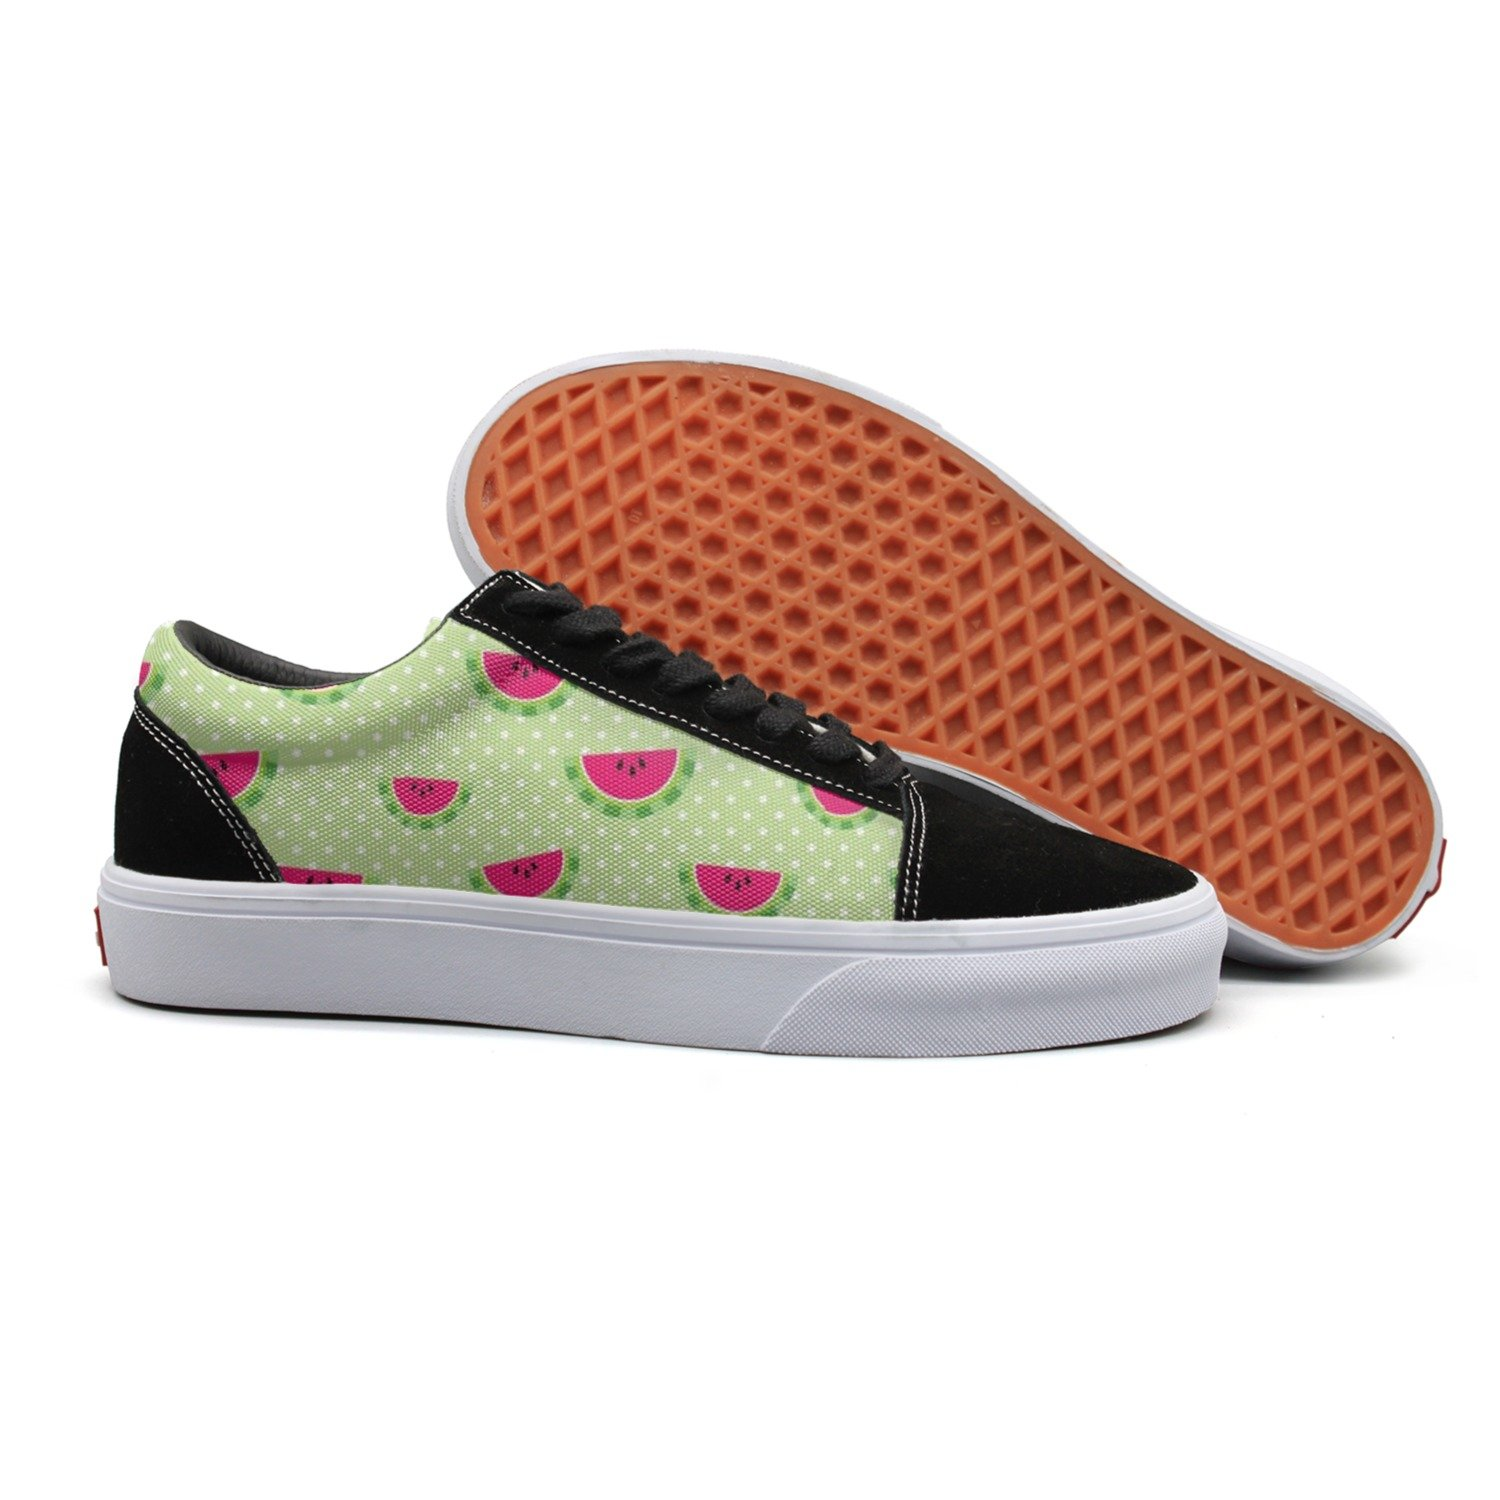 FashioSneaker Comfort Footwear For Women Don't Eat Watermelon Seeds(2) Skateboard Shoes